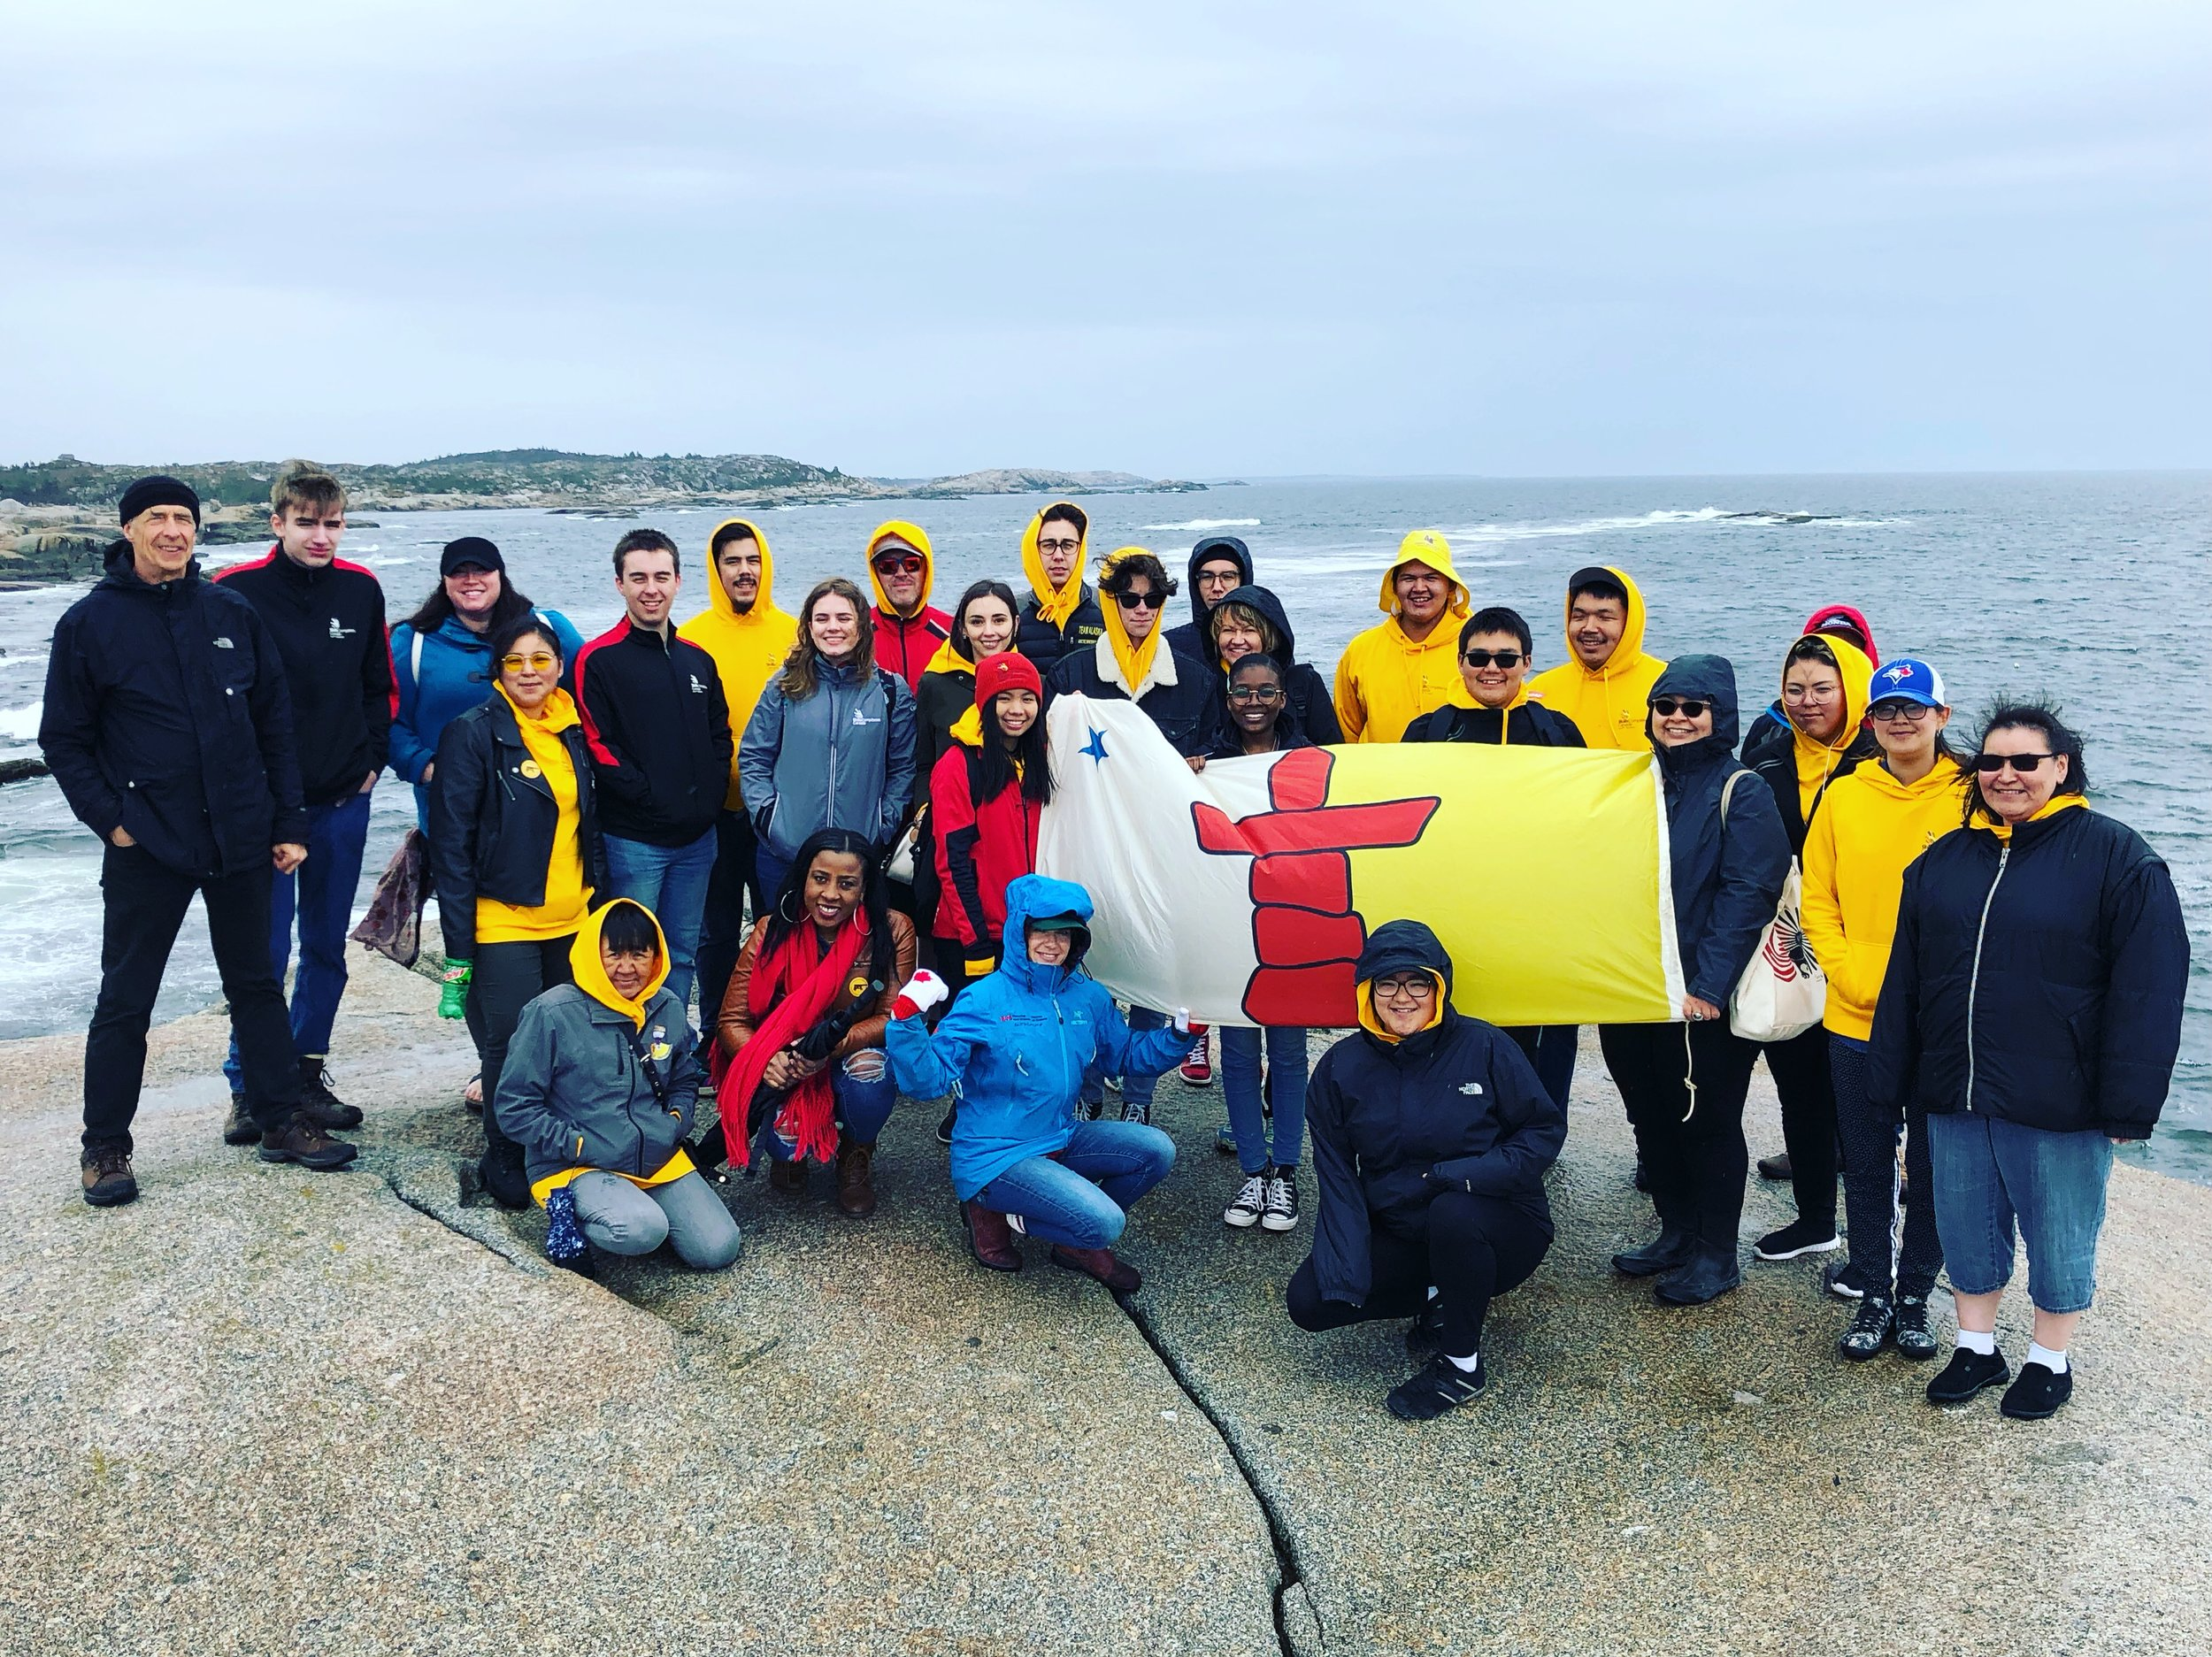 2019 Team Nunavut members exploring the Atlantic ocean with a hike along the rocks at Peggy's Cove, NS.